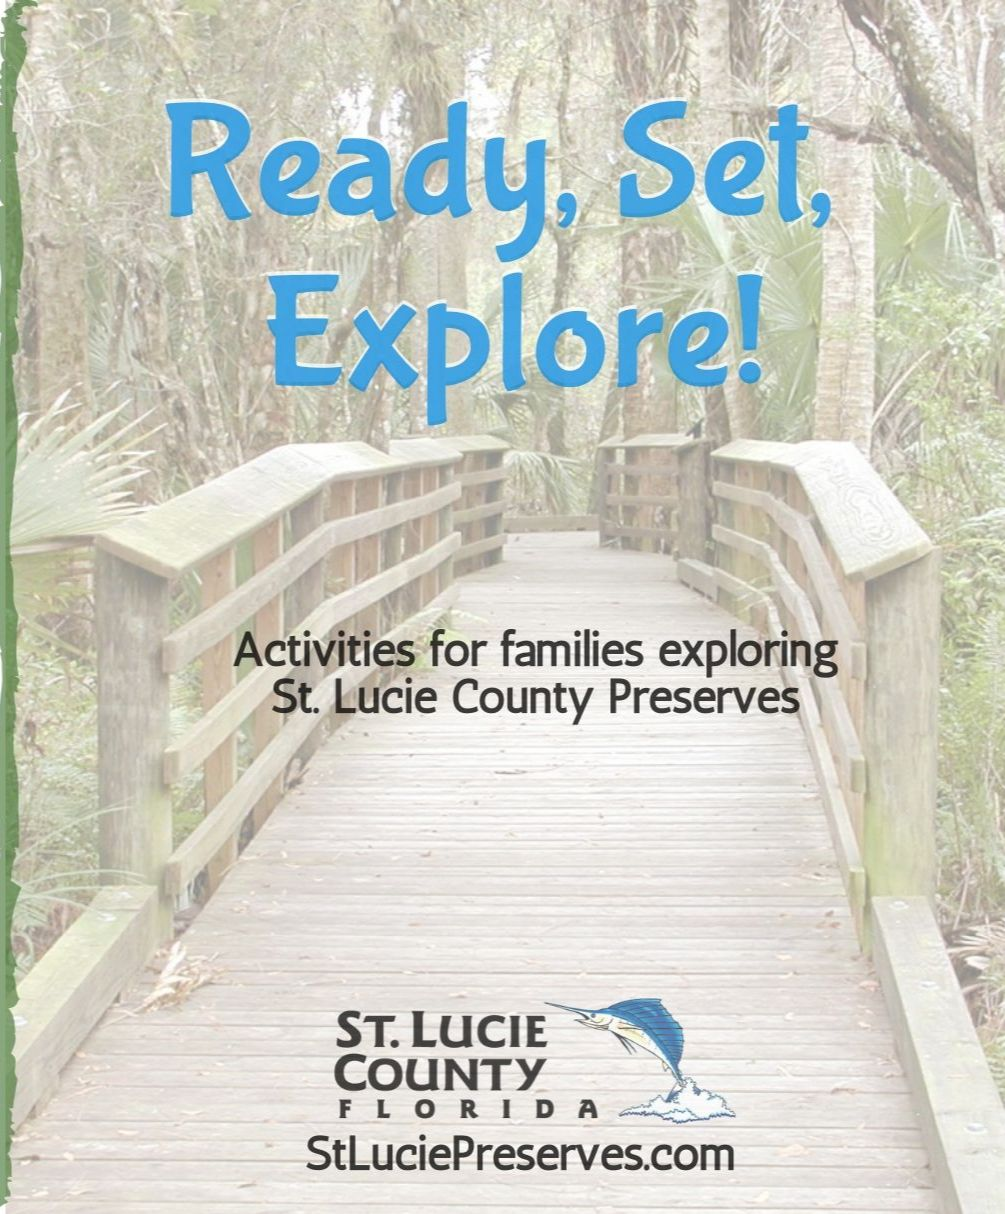 Cover page of Activity Guide